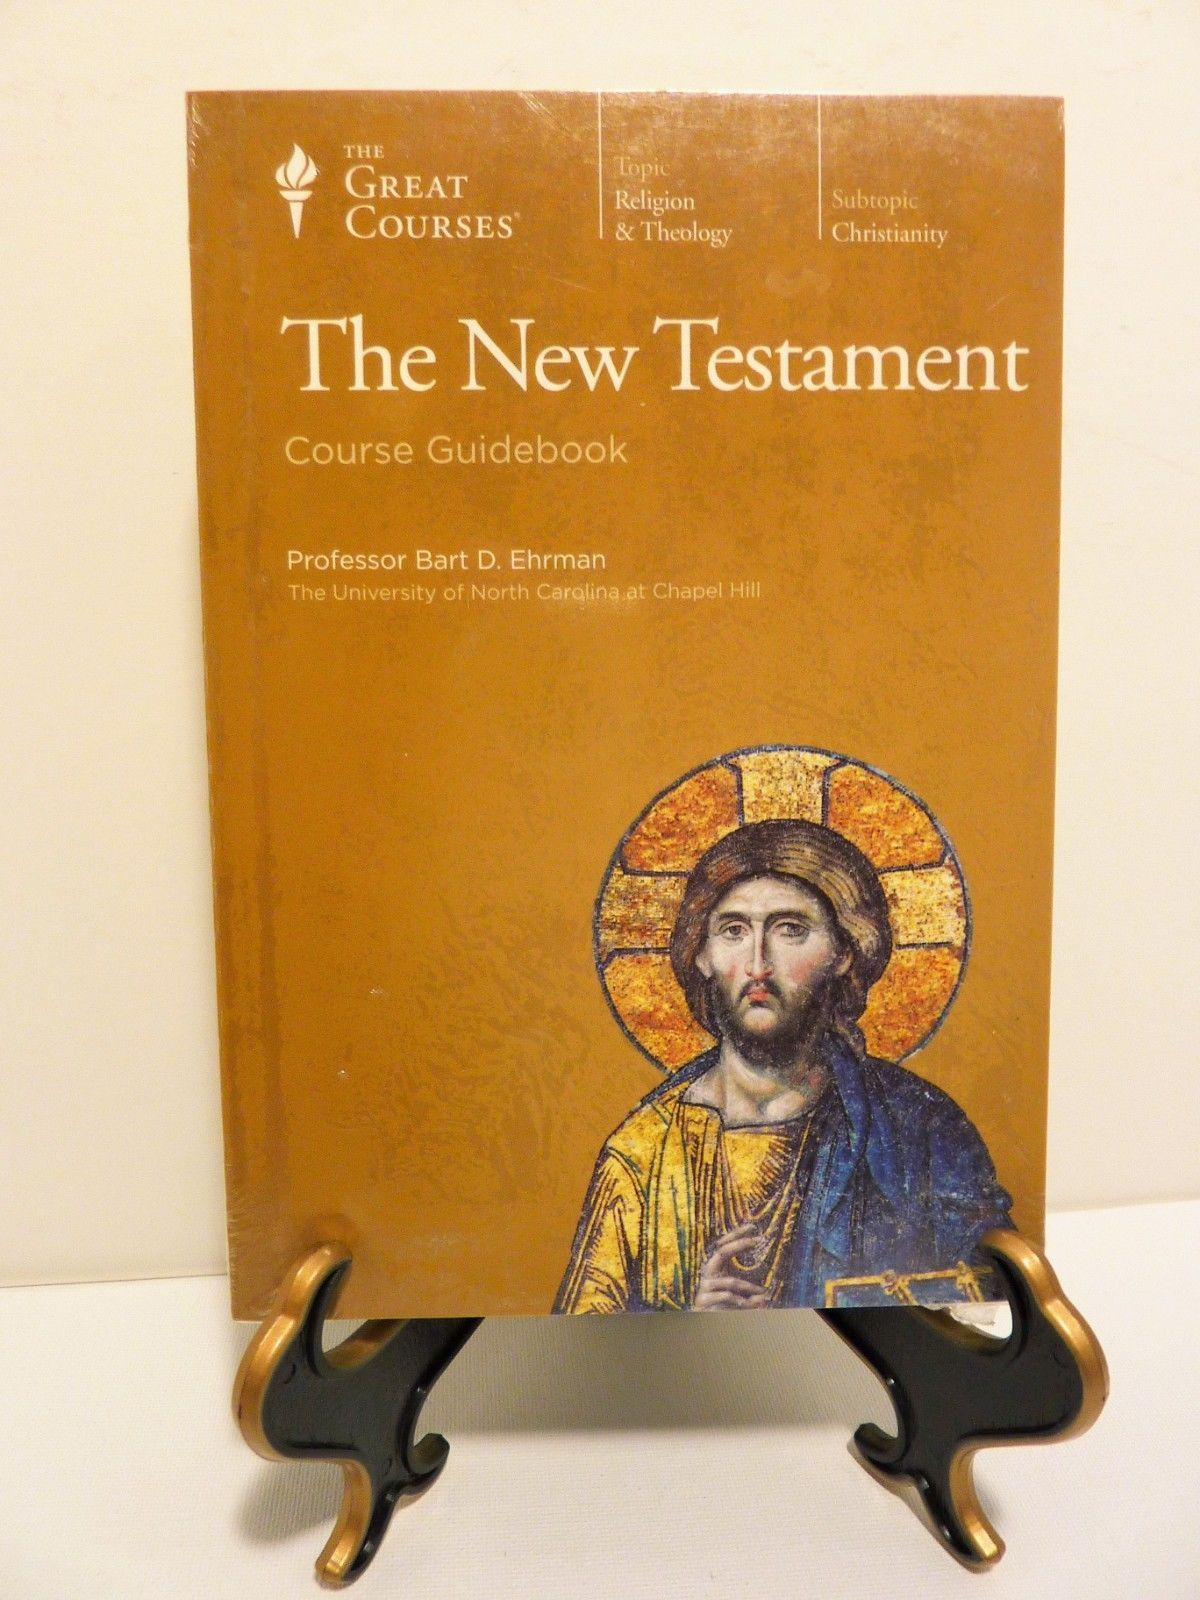 Primary image for The New Testament by The Great Courses with Guidebook and Audio CDs